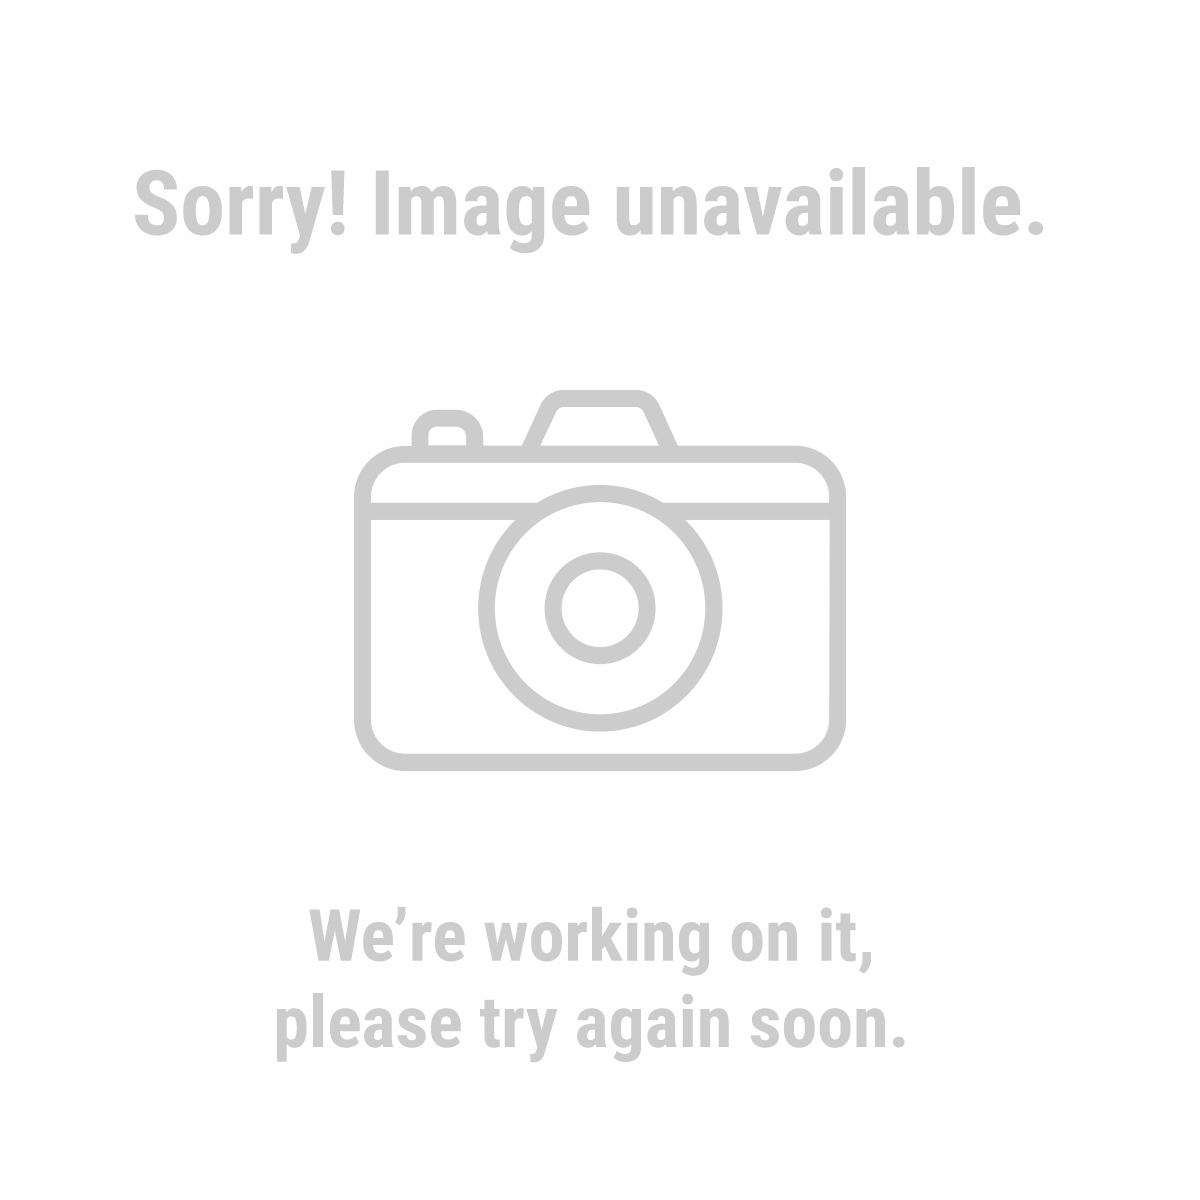 Warrior 61215 14 in. Cut-off Wheel for Metal